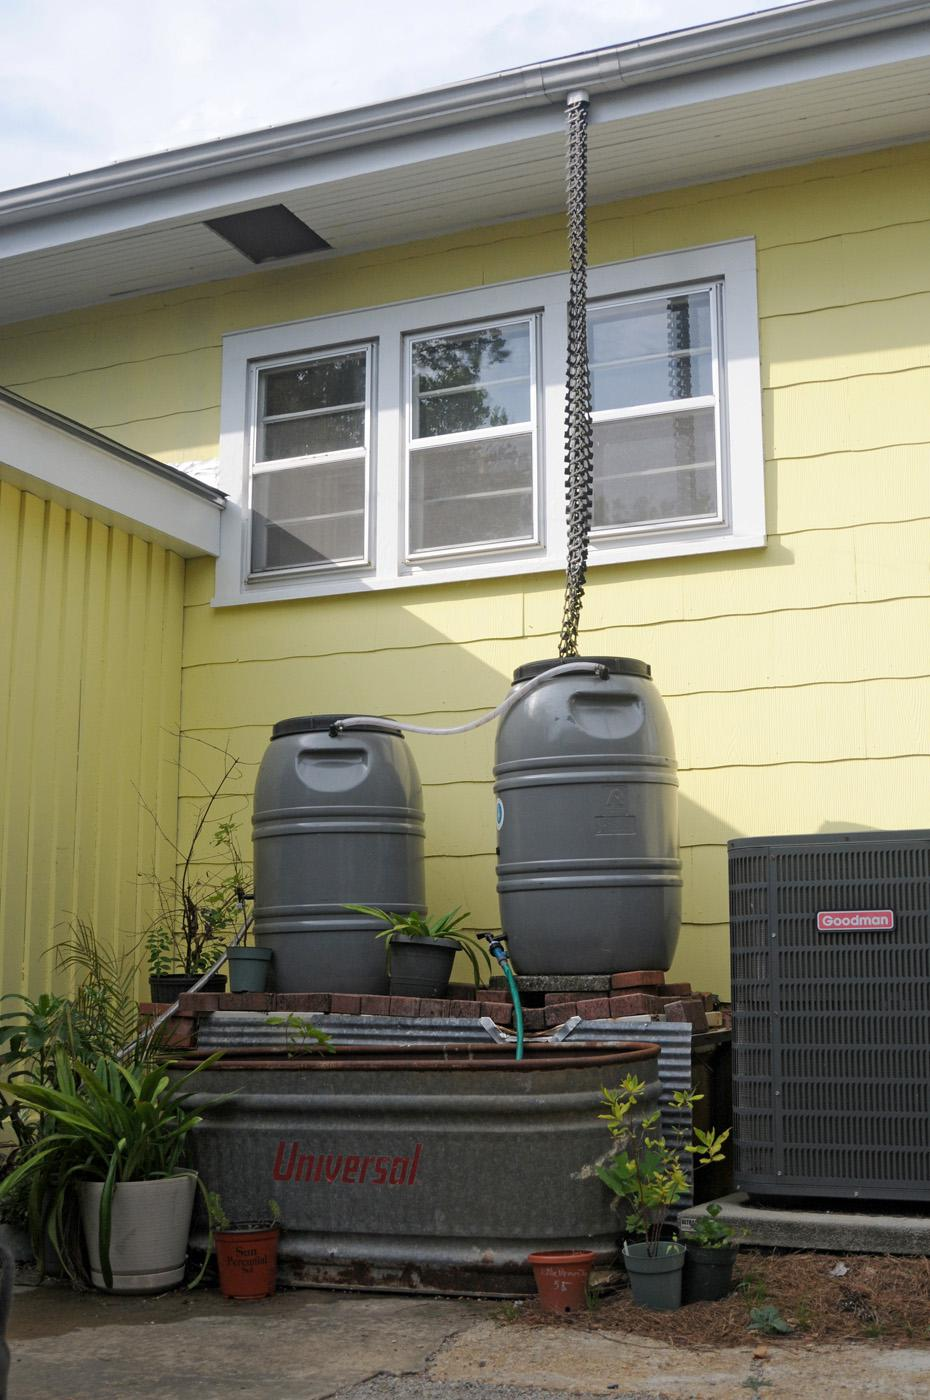 Rain barrels collect water for homeowners to use in their landscapes. The collected water is free and does not have any of the residual chemicals found in tap water. (Photo by Kat Lawrence)